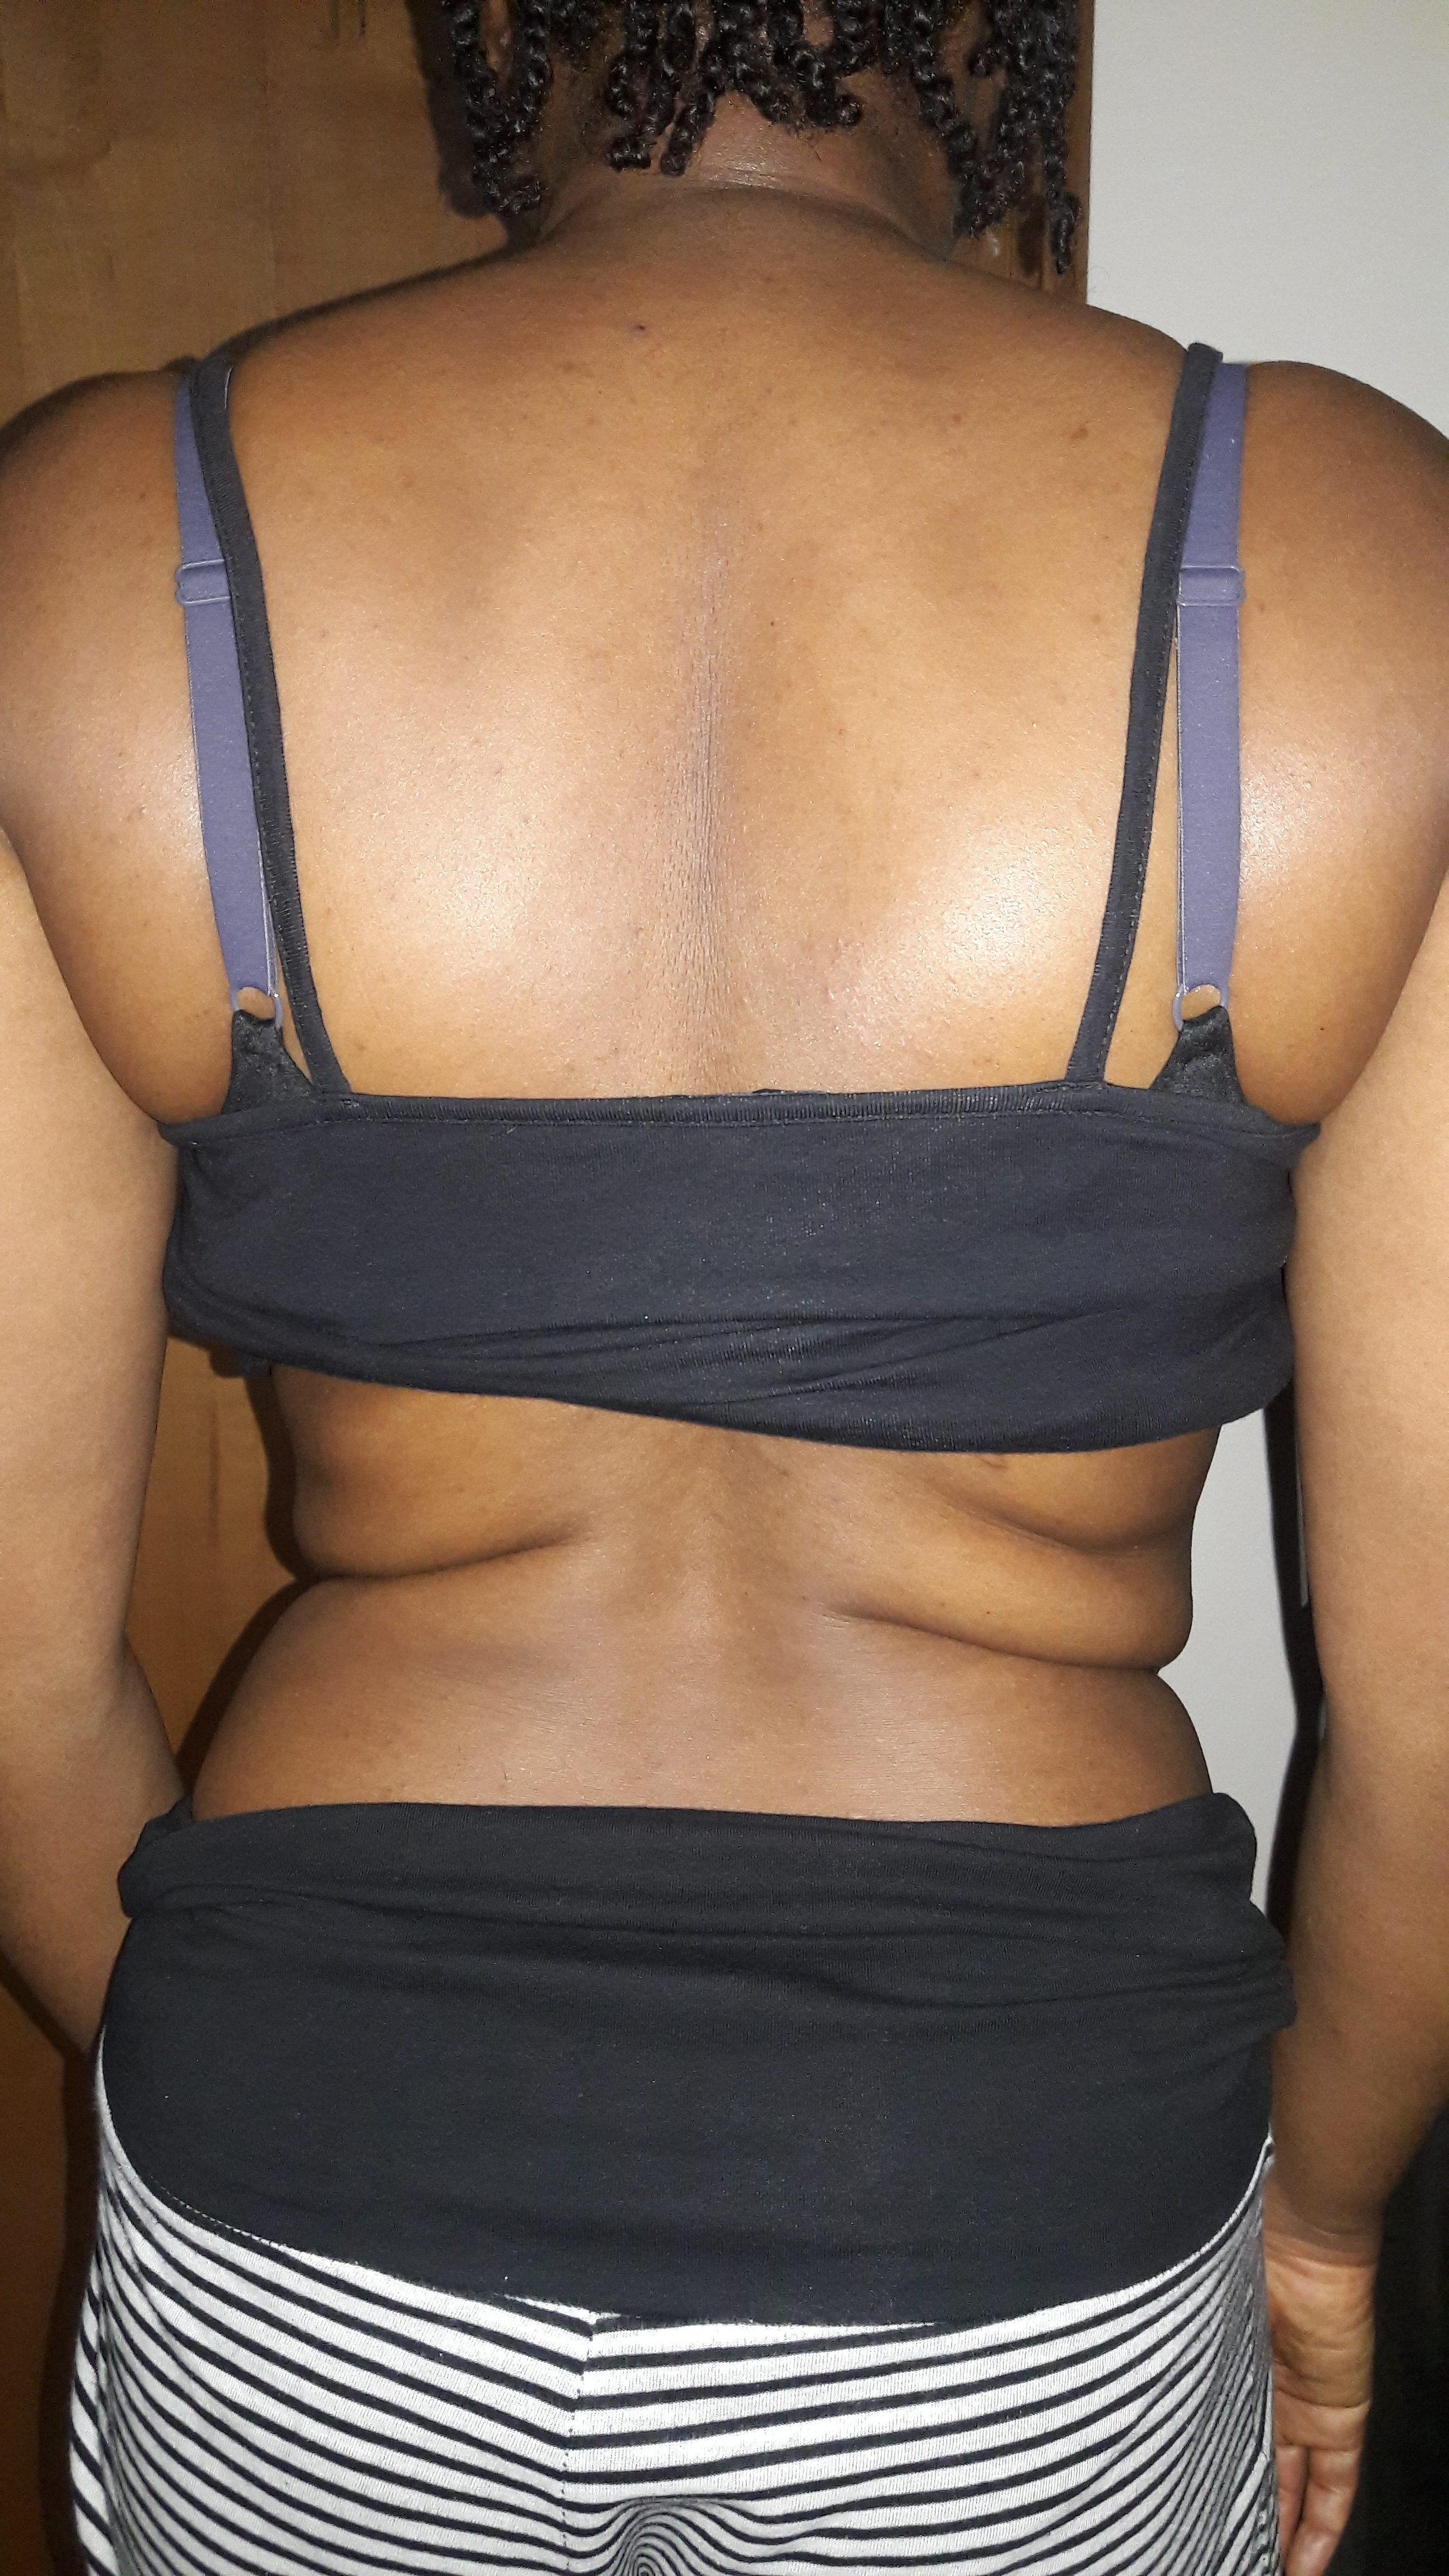 scliosis assessment